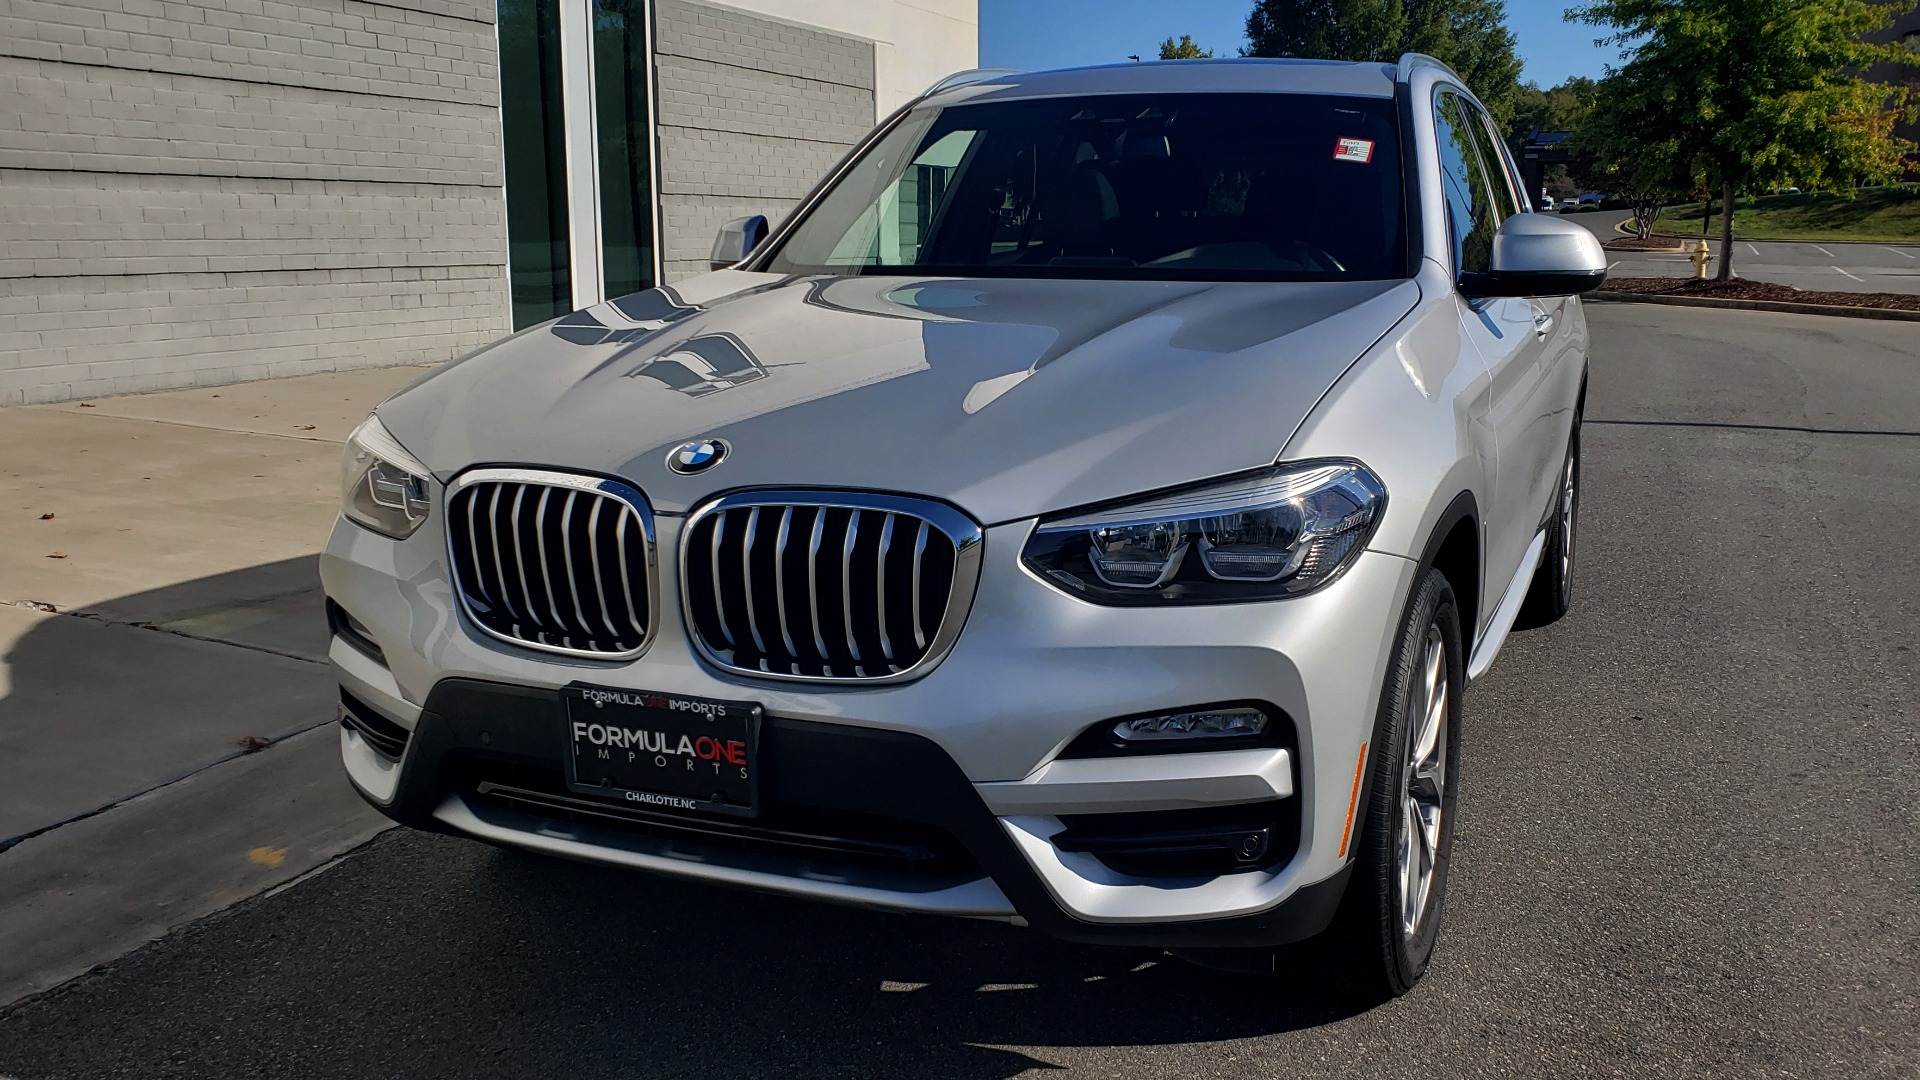 Used 2019 BMW X3 XDRIVE30I / DRVR ASST / PANO-ROOF / HTD STS / REARVIEW for sale $41,995 at Formula Imports in Charlotte NC 28227 2